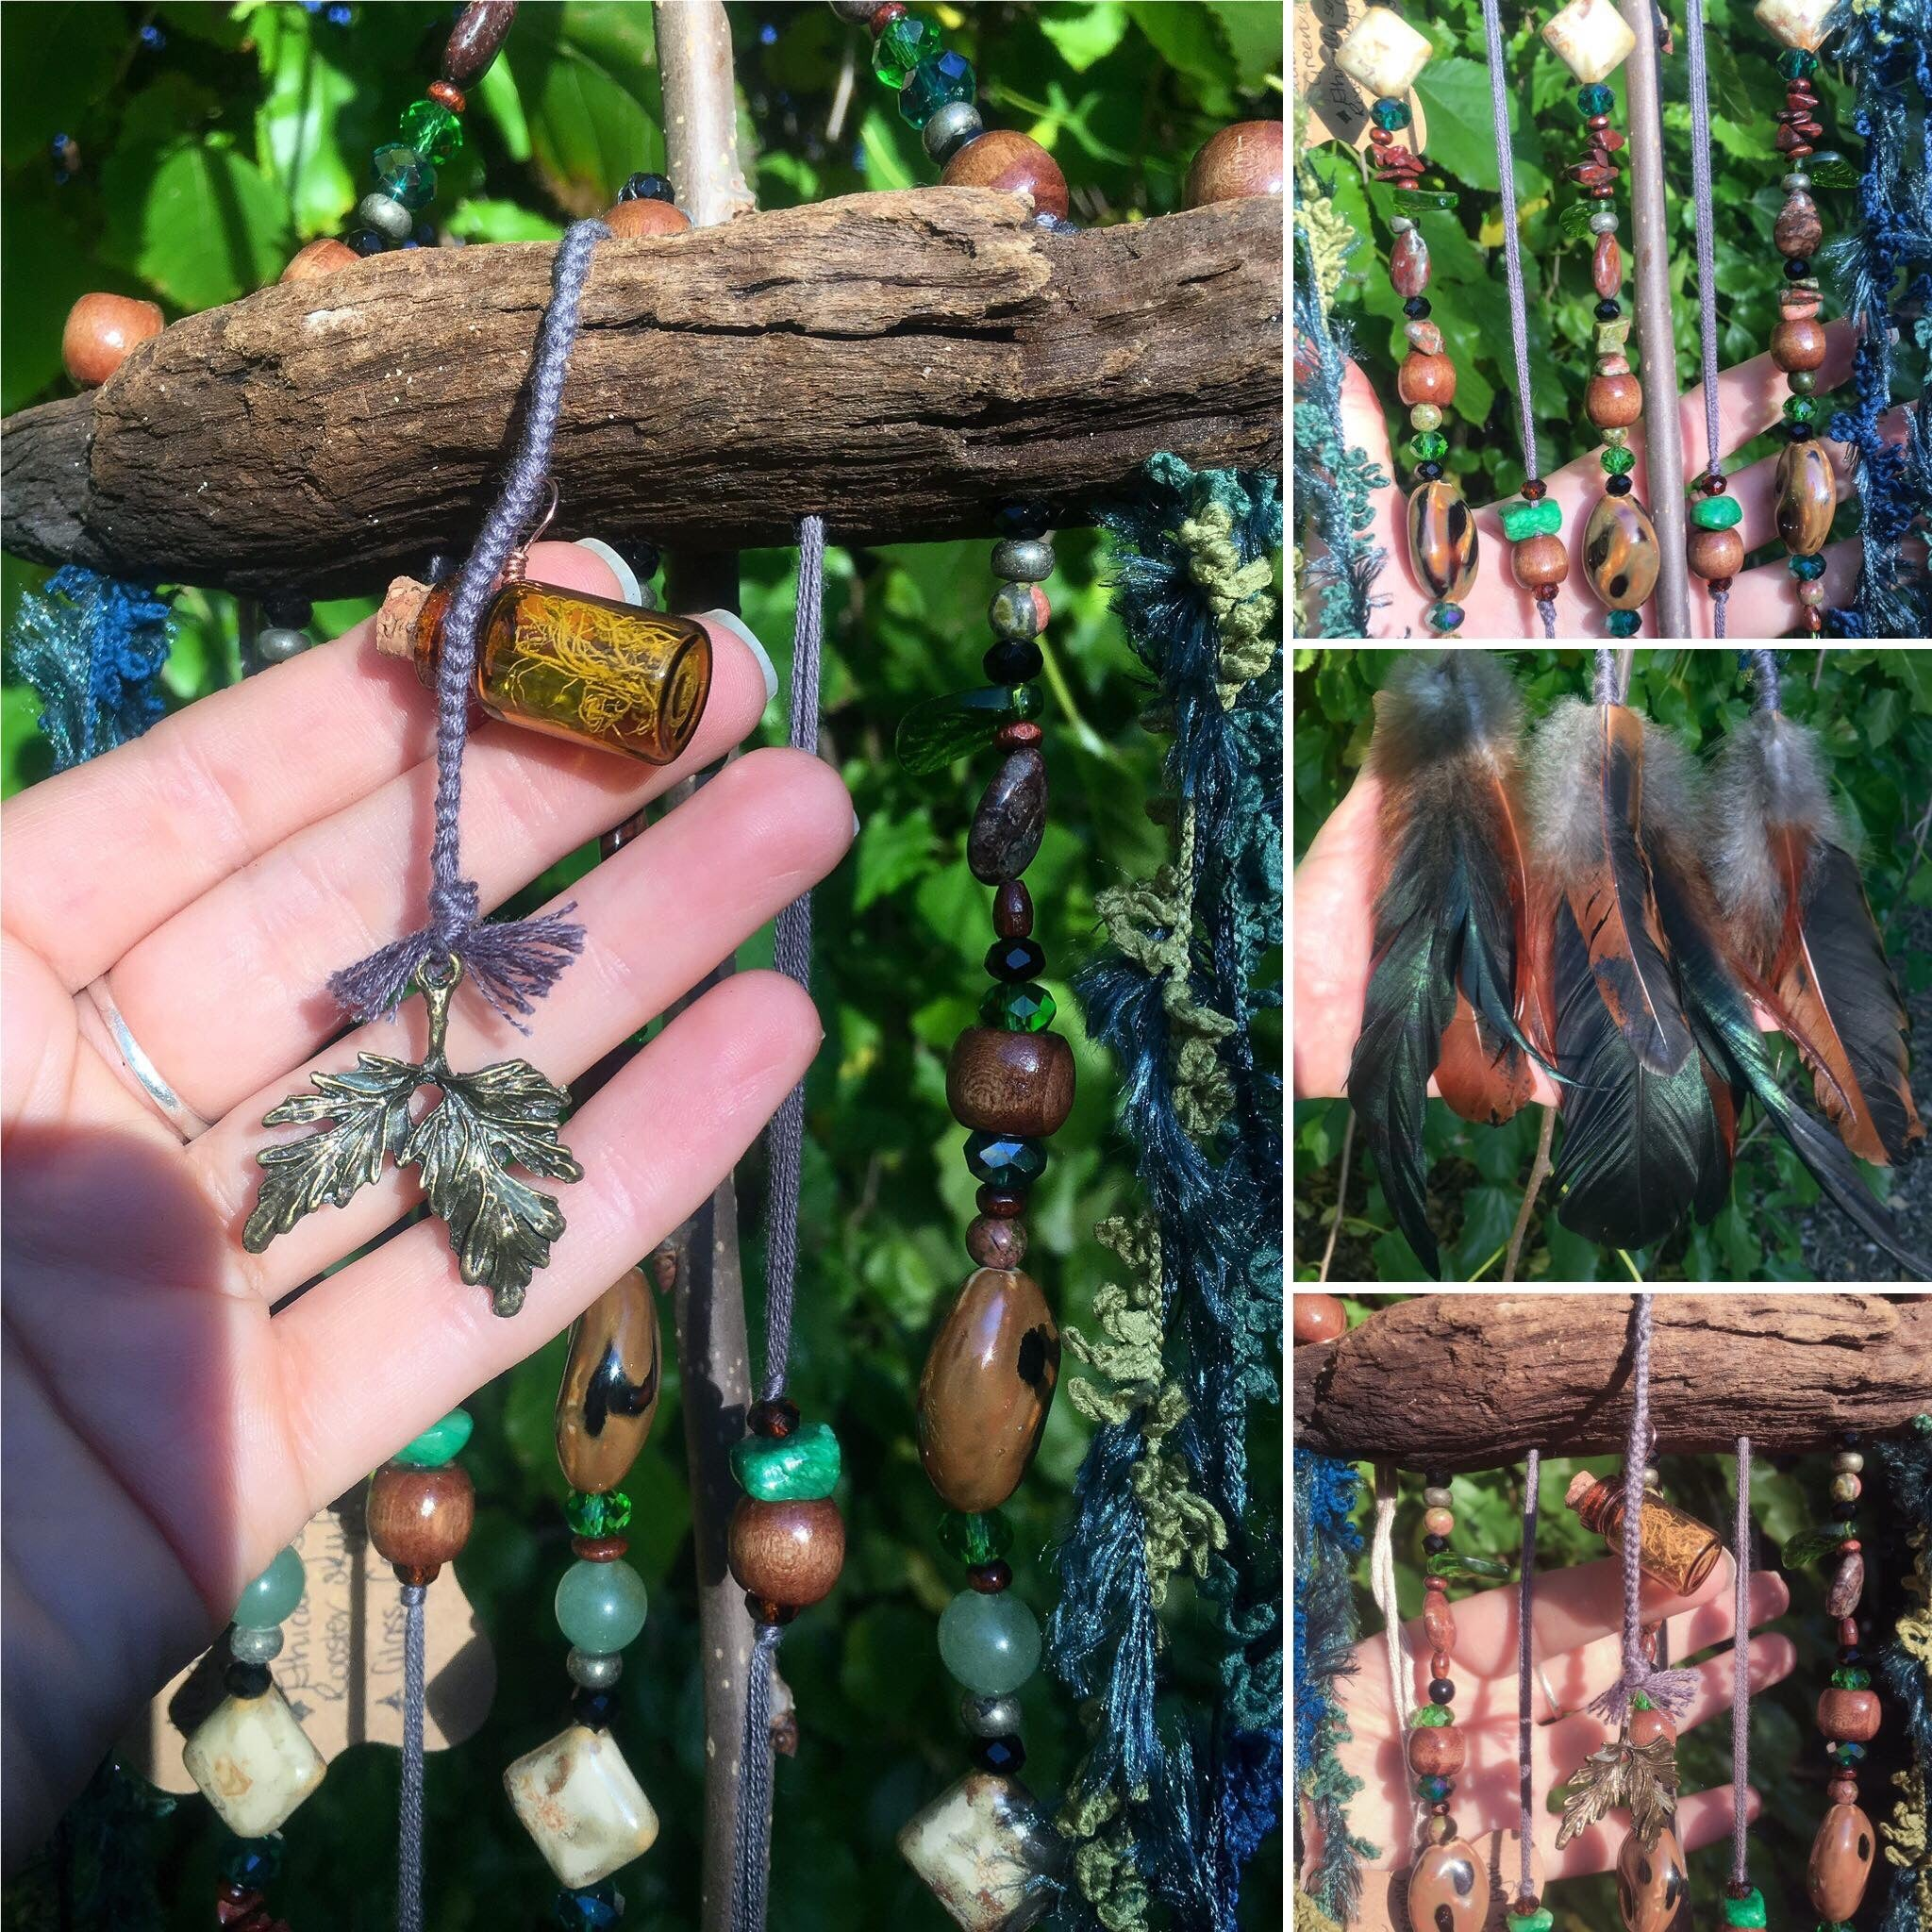 CONTACT US TO ORDER  Ethical Crystal Dreamcatcher Art